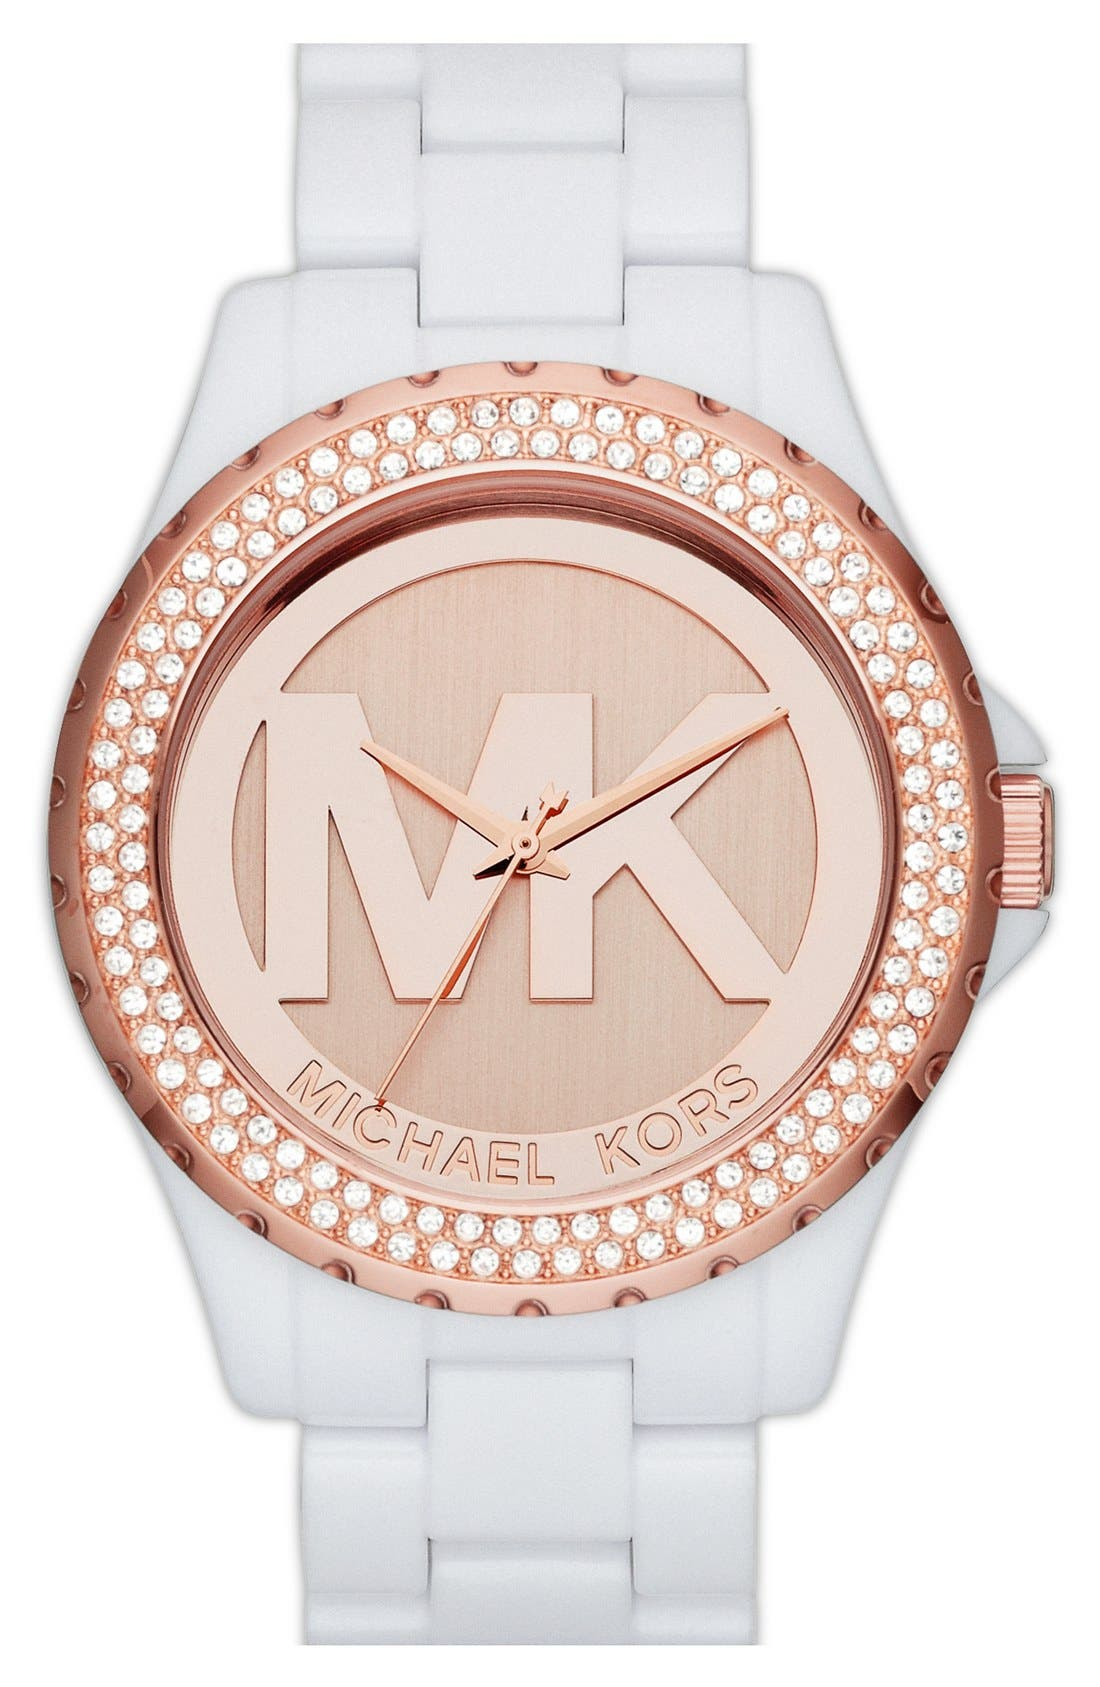 Main Image - Michael Kors 'Madison' Crystal Bezel Logo Watch, 42mm